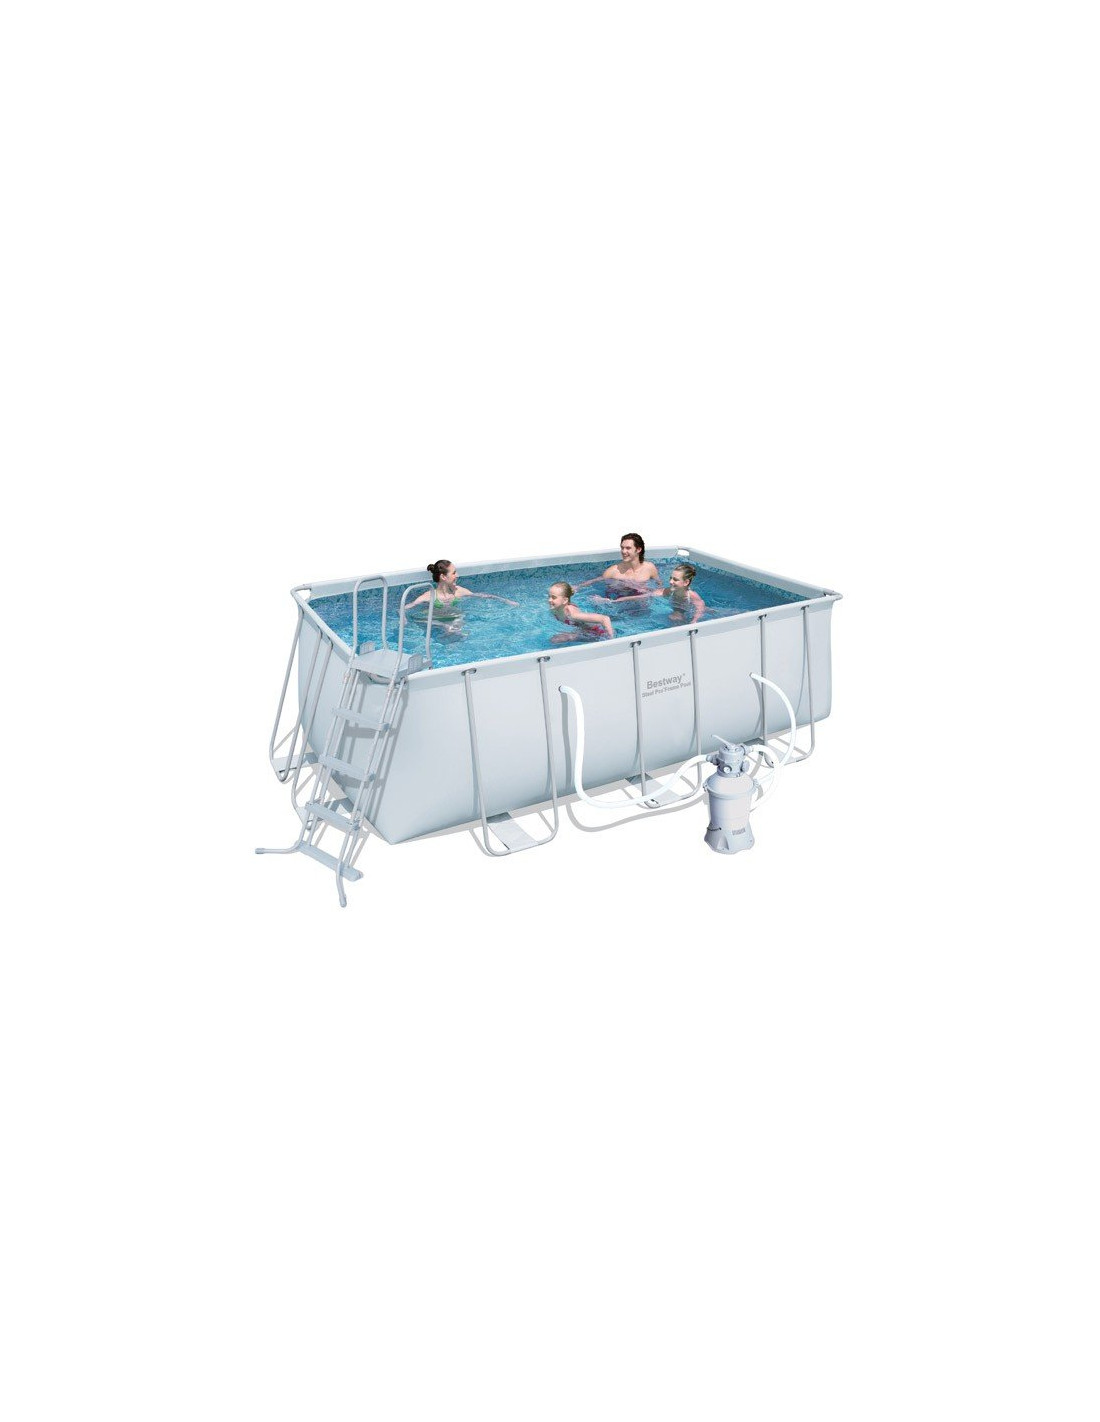 Piscine tubulaire rectangulaire bestway avec filtre sable for Filtre a sable piscine